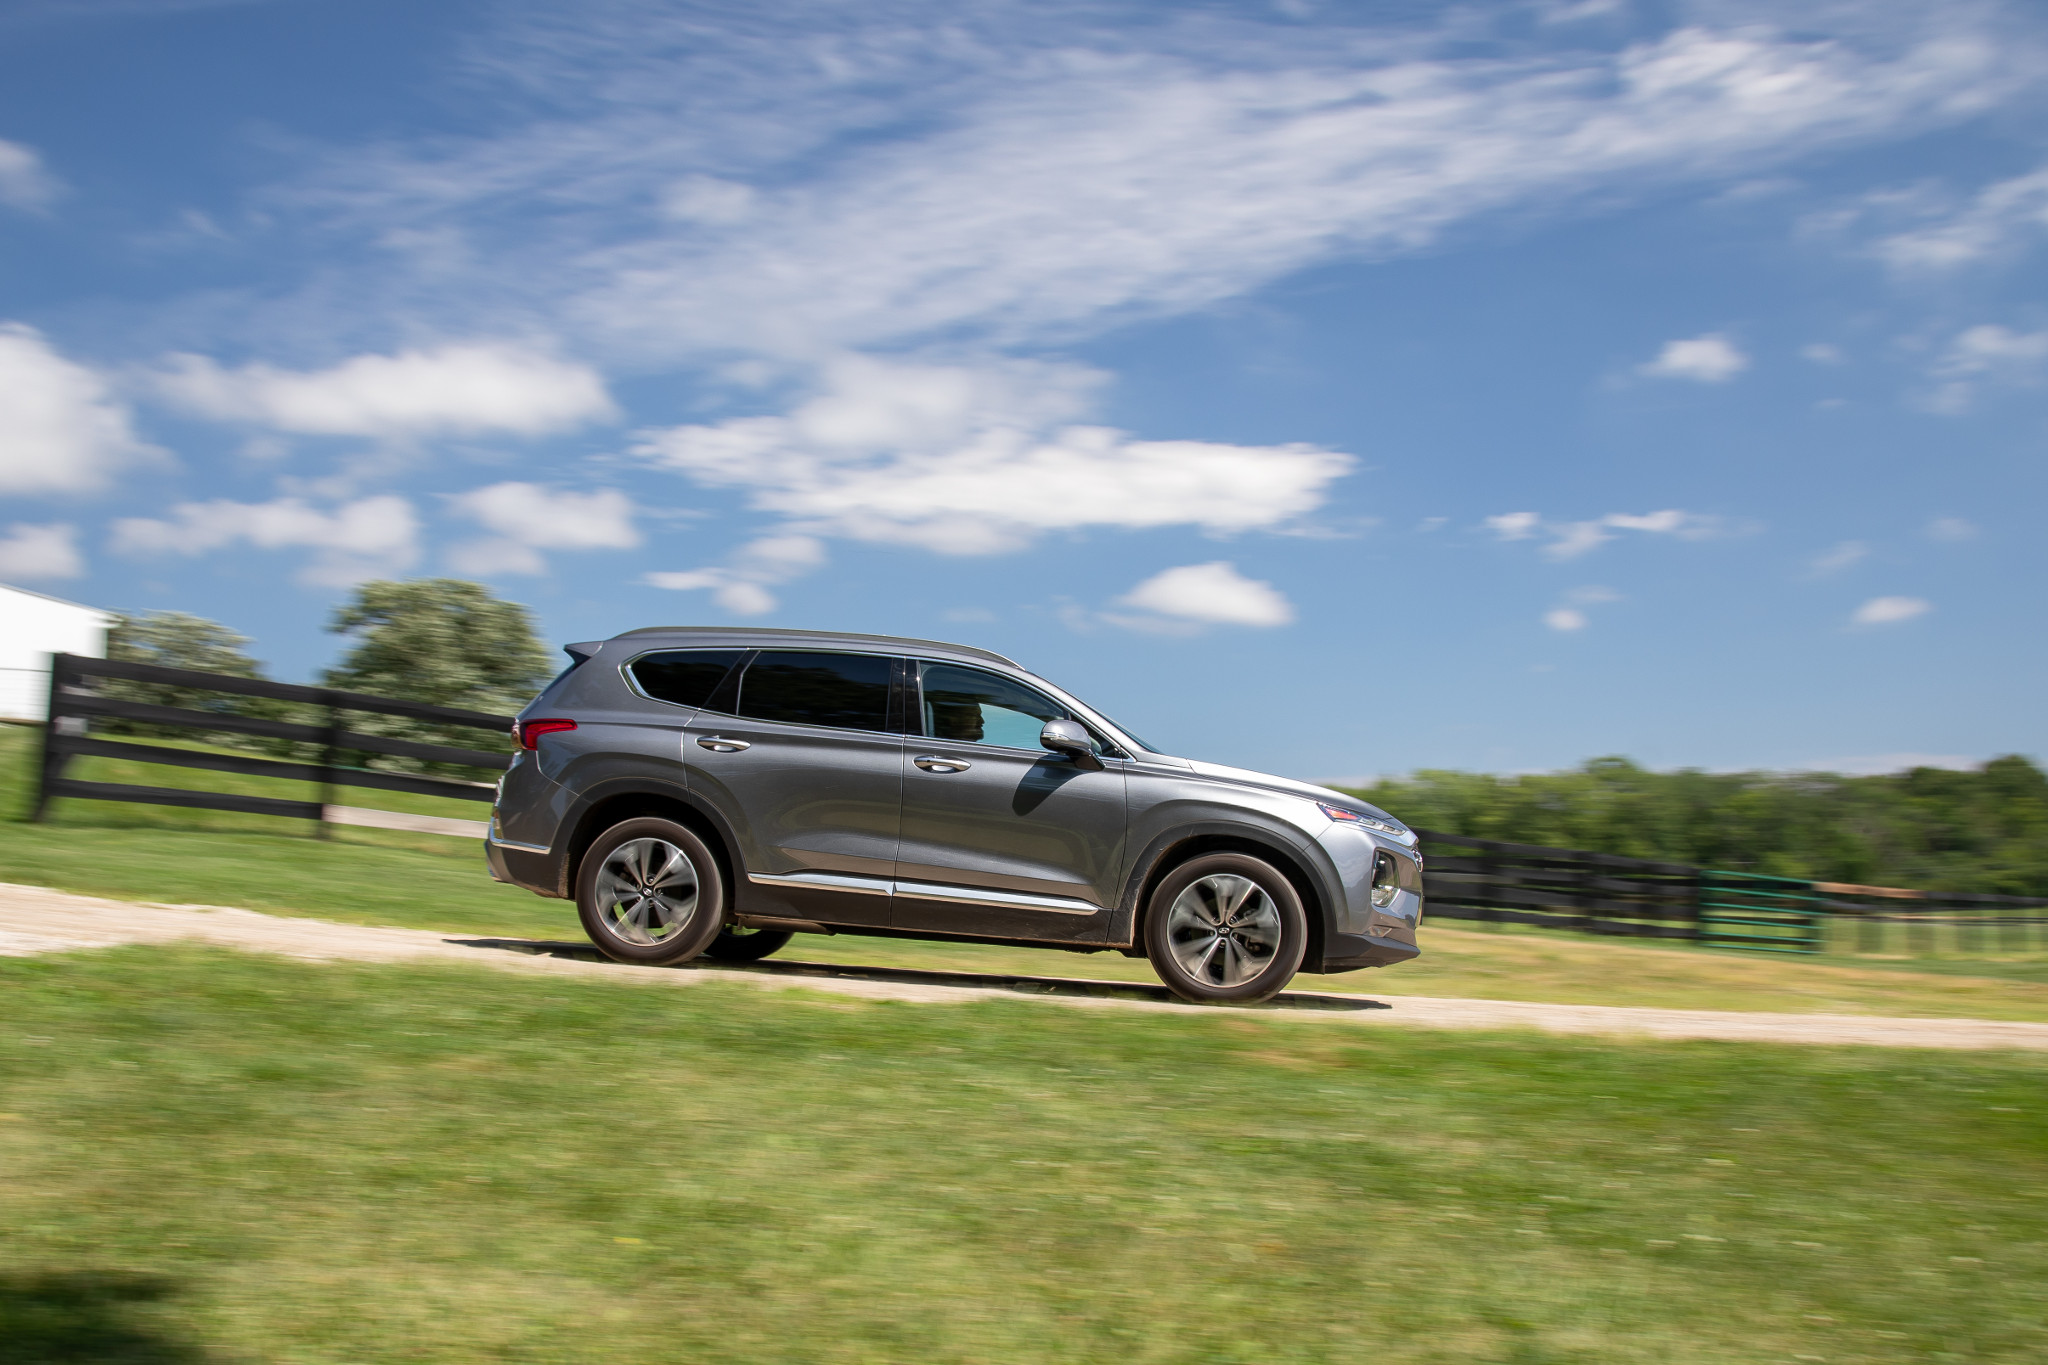 We Have a Winner: Why the 2019 Hyundai Santa Fe Is the Best Mid-Size SUV